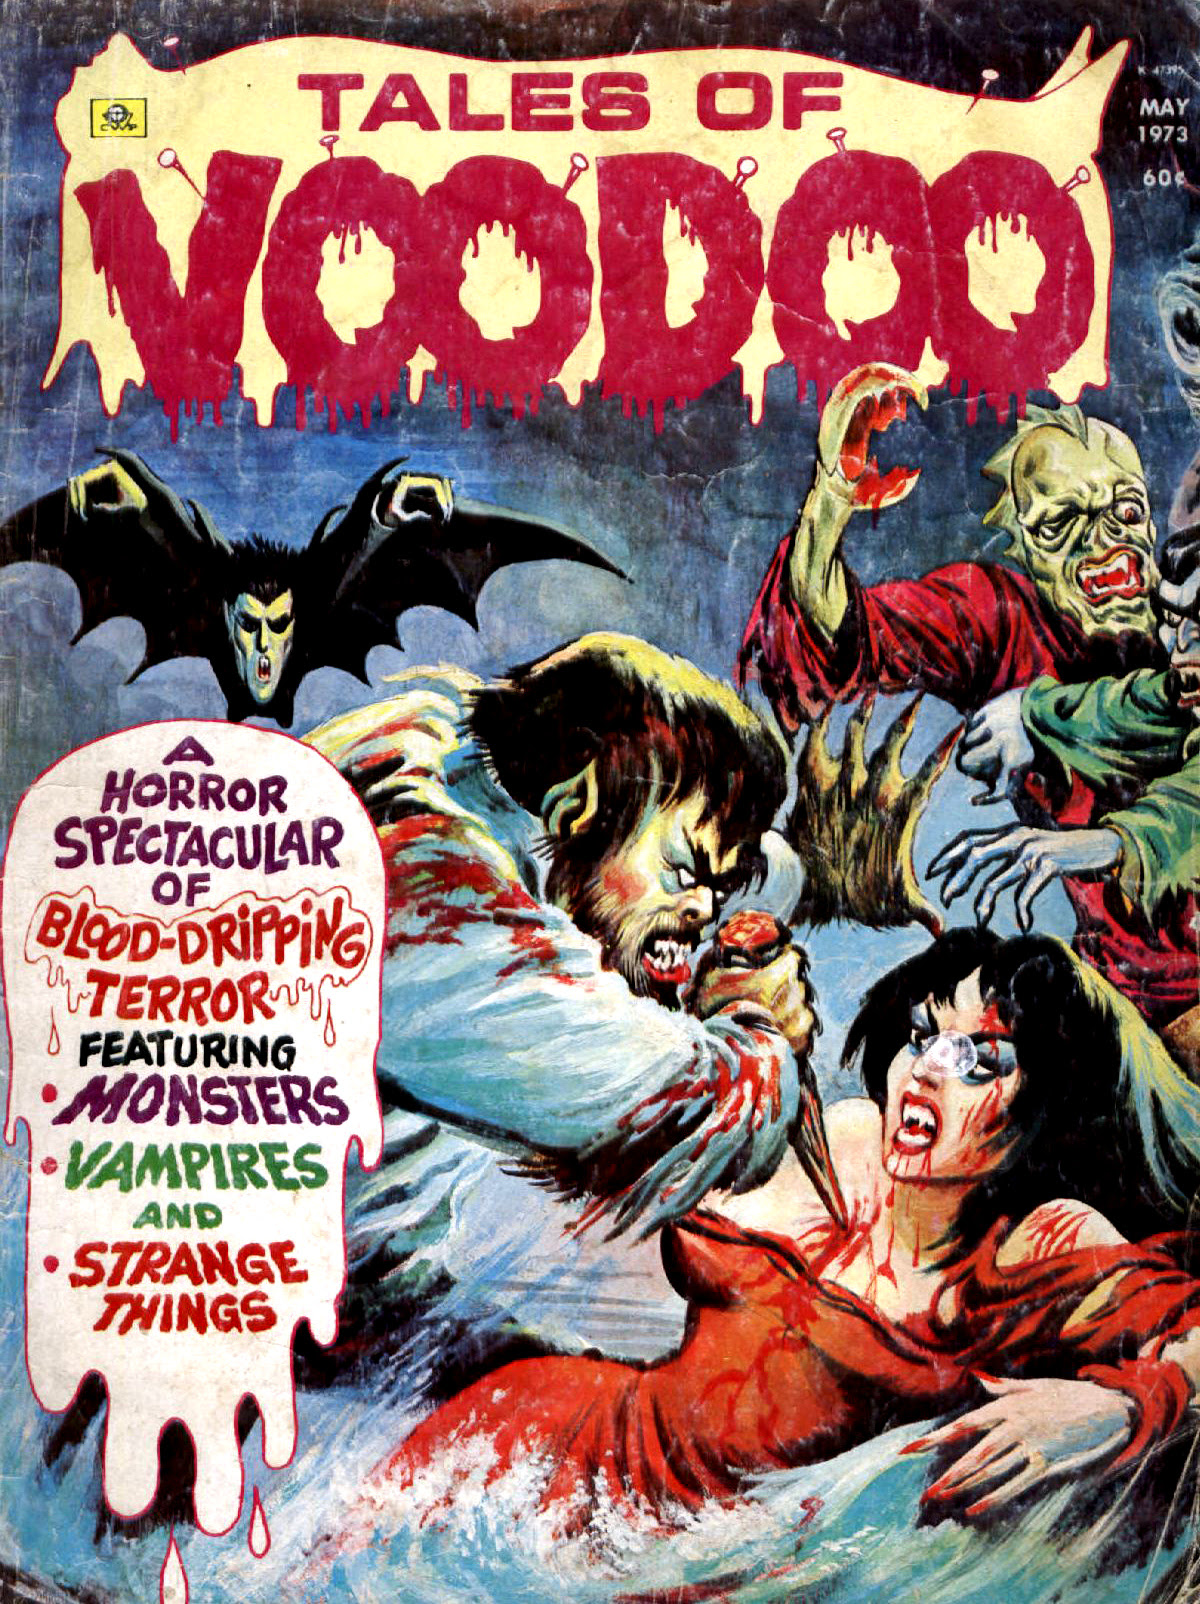 Tales of Voodoo Vol. 6 #3 (Eerie Publications 1973)